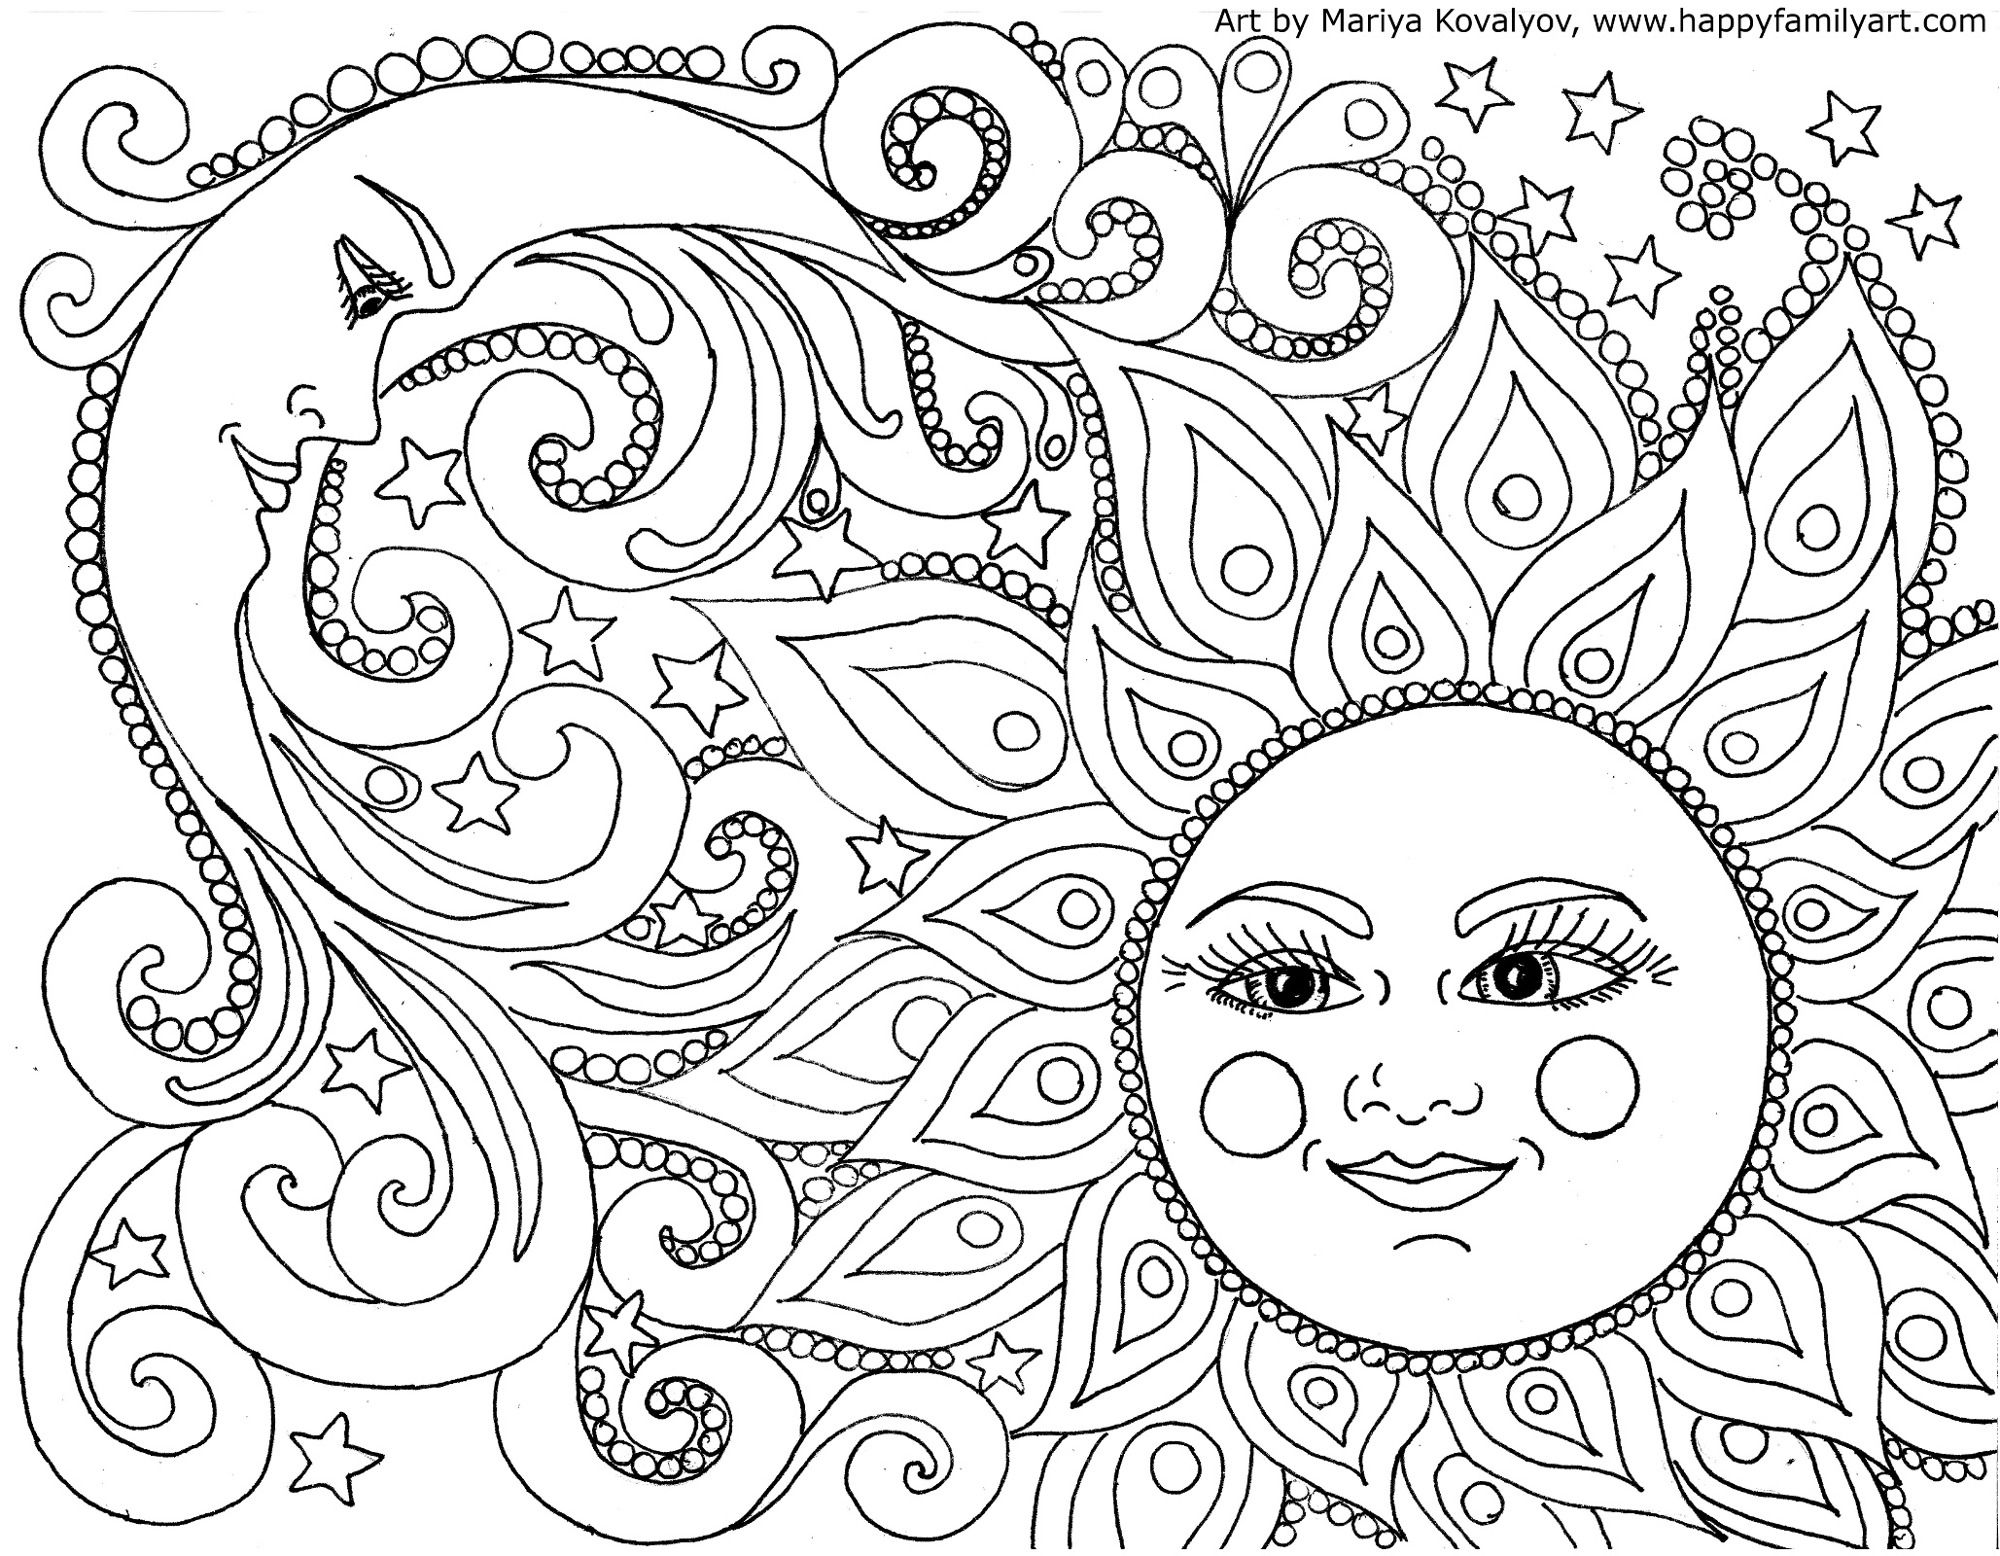 Coloring pages for adults download - 1000 Ideas About Coloring Pages For Adults